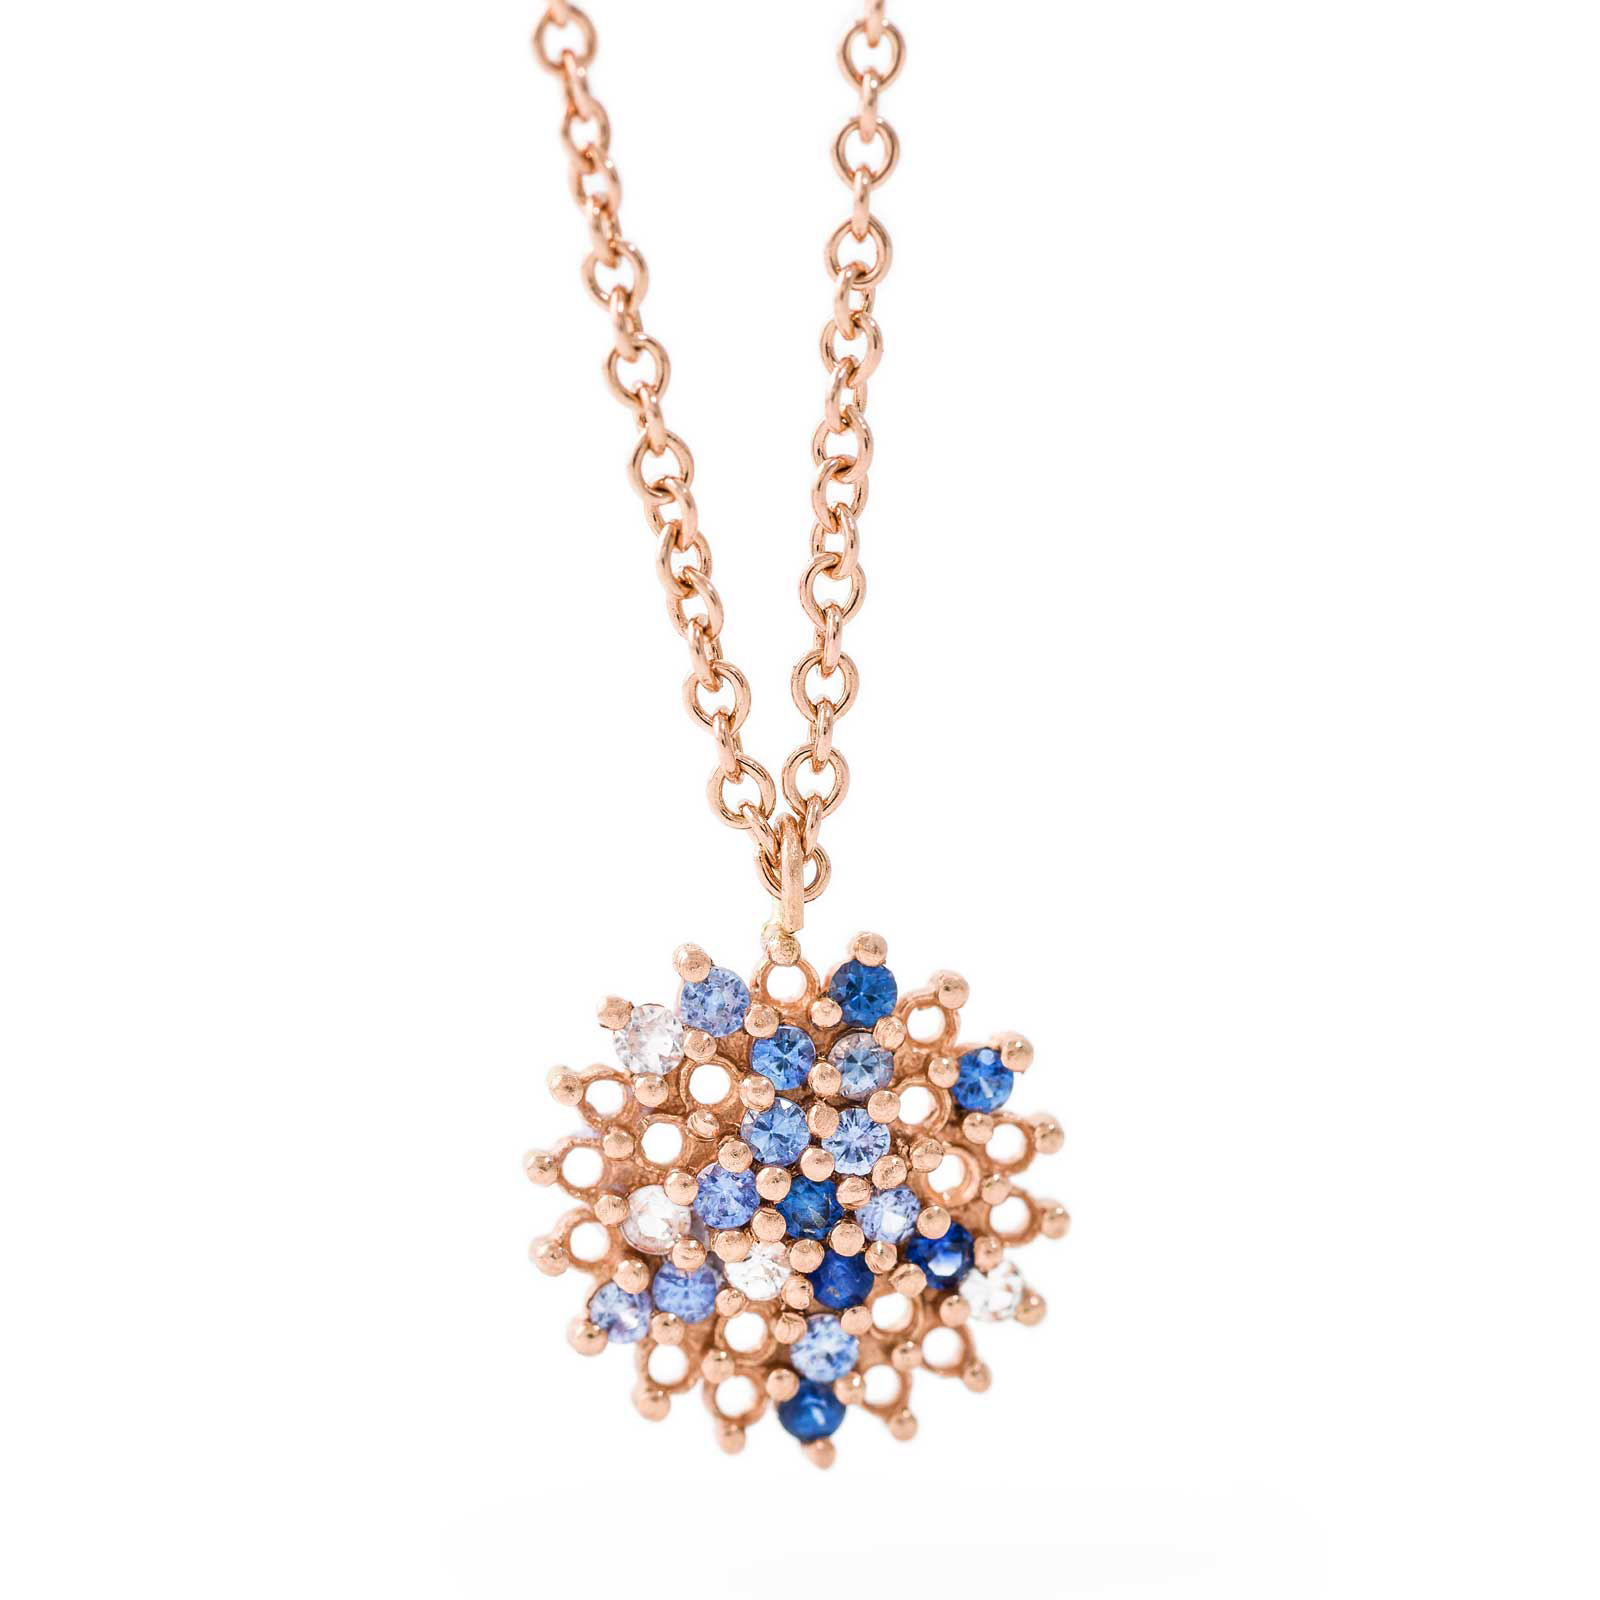 Large Pendant – Blue Sapphire and White Diamond, 18ct Rose Gold